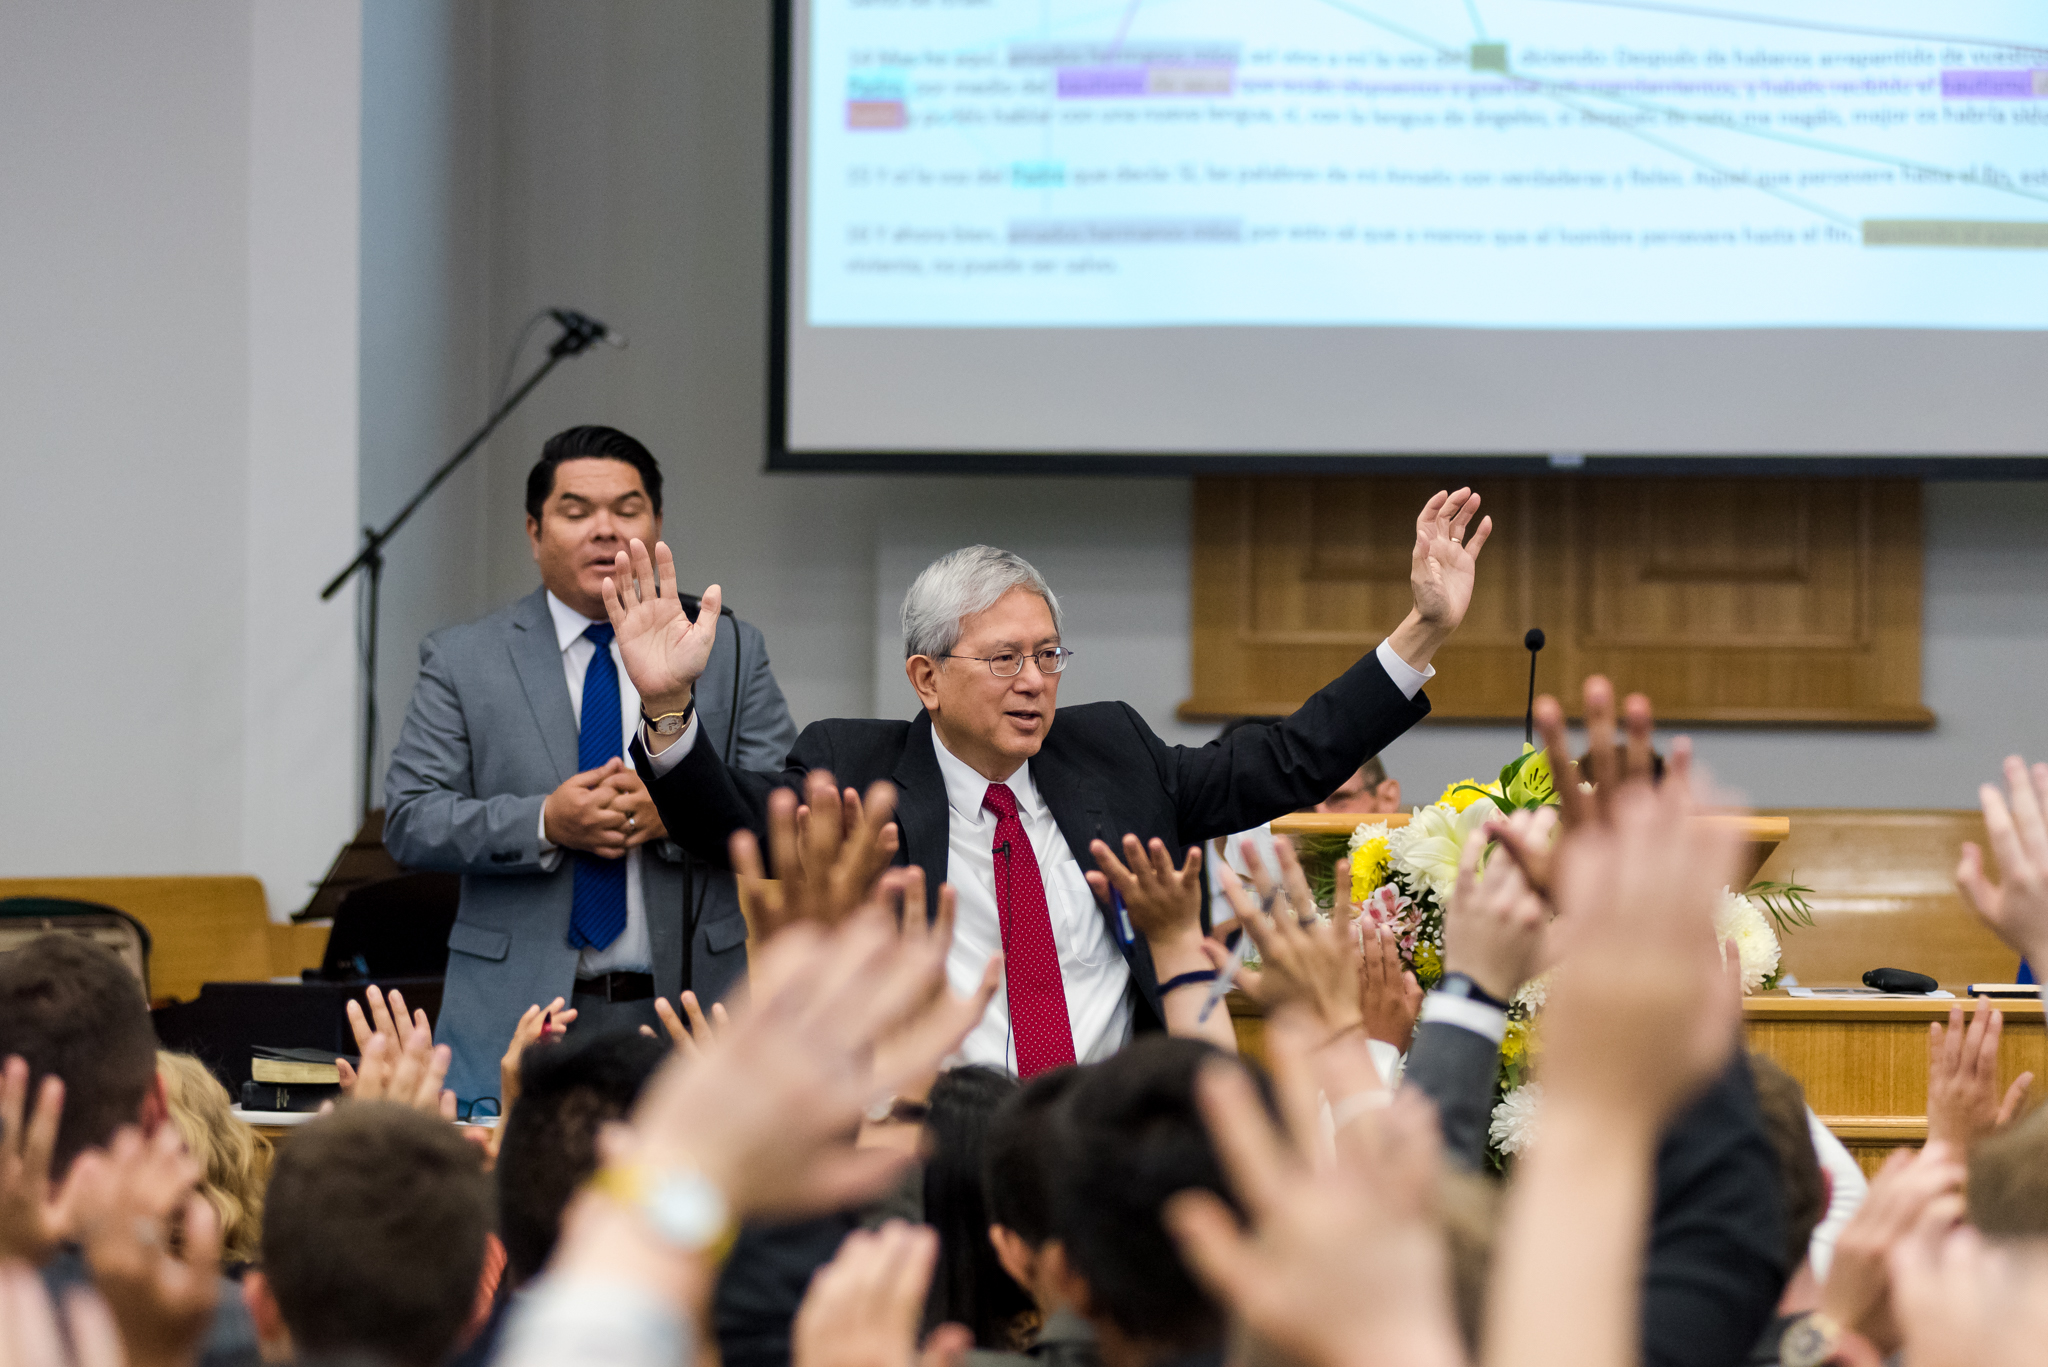 Elder Gong asks missionaries to raise their hands to show love for their mission president and his wife following a conference with missionaries in the Chile Rancagua Mission on Nov. 10.